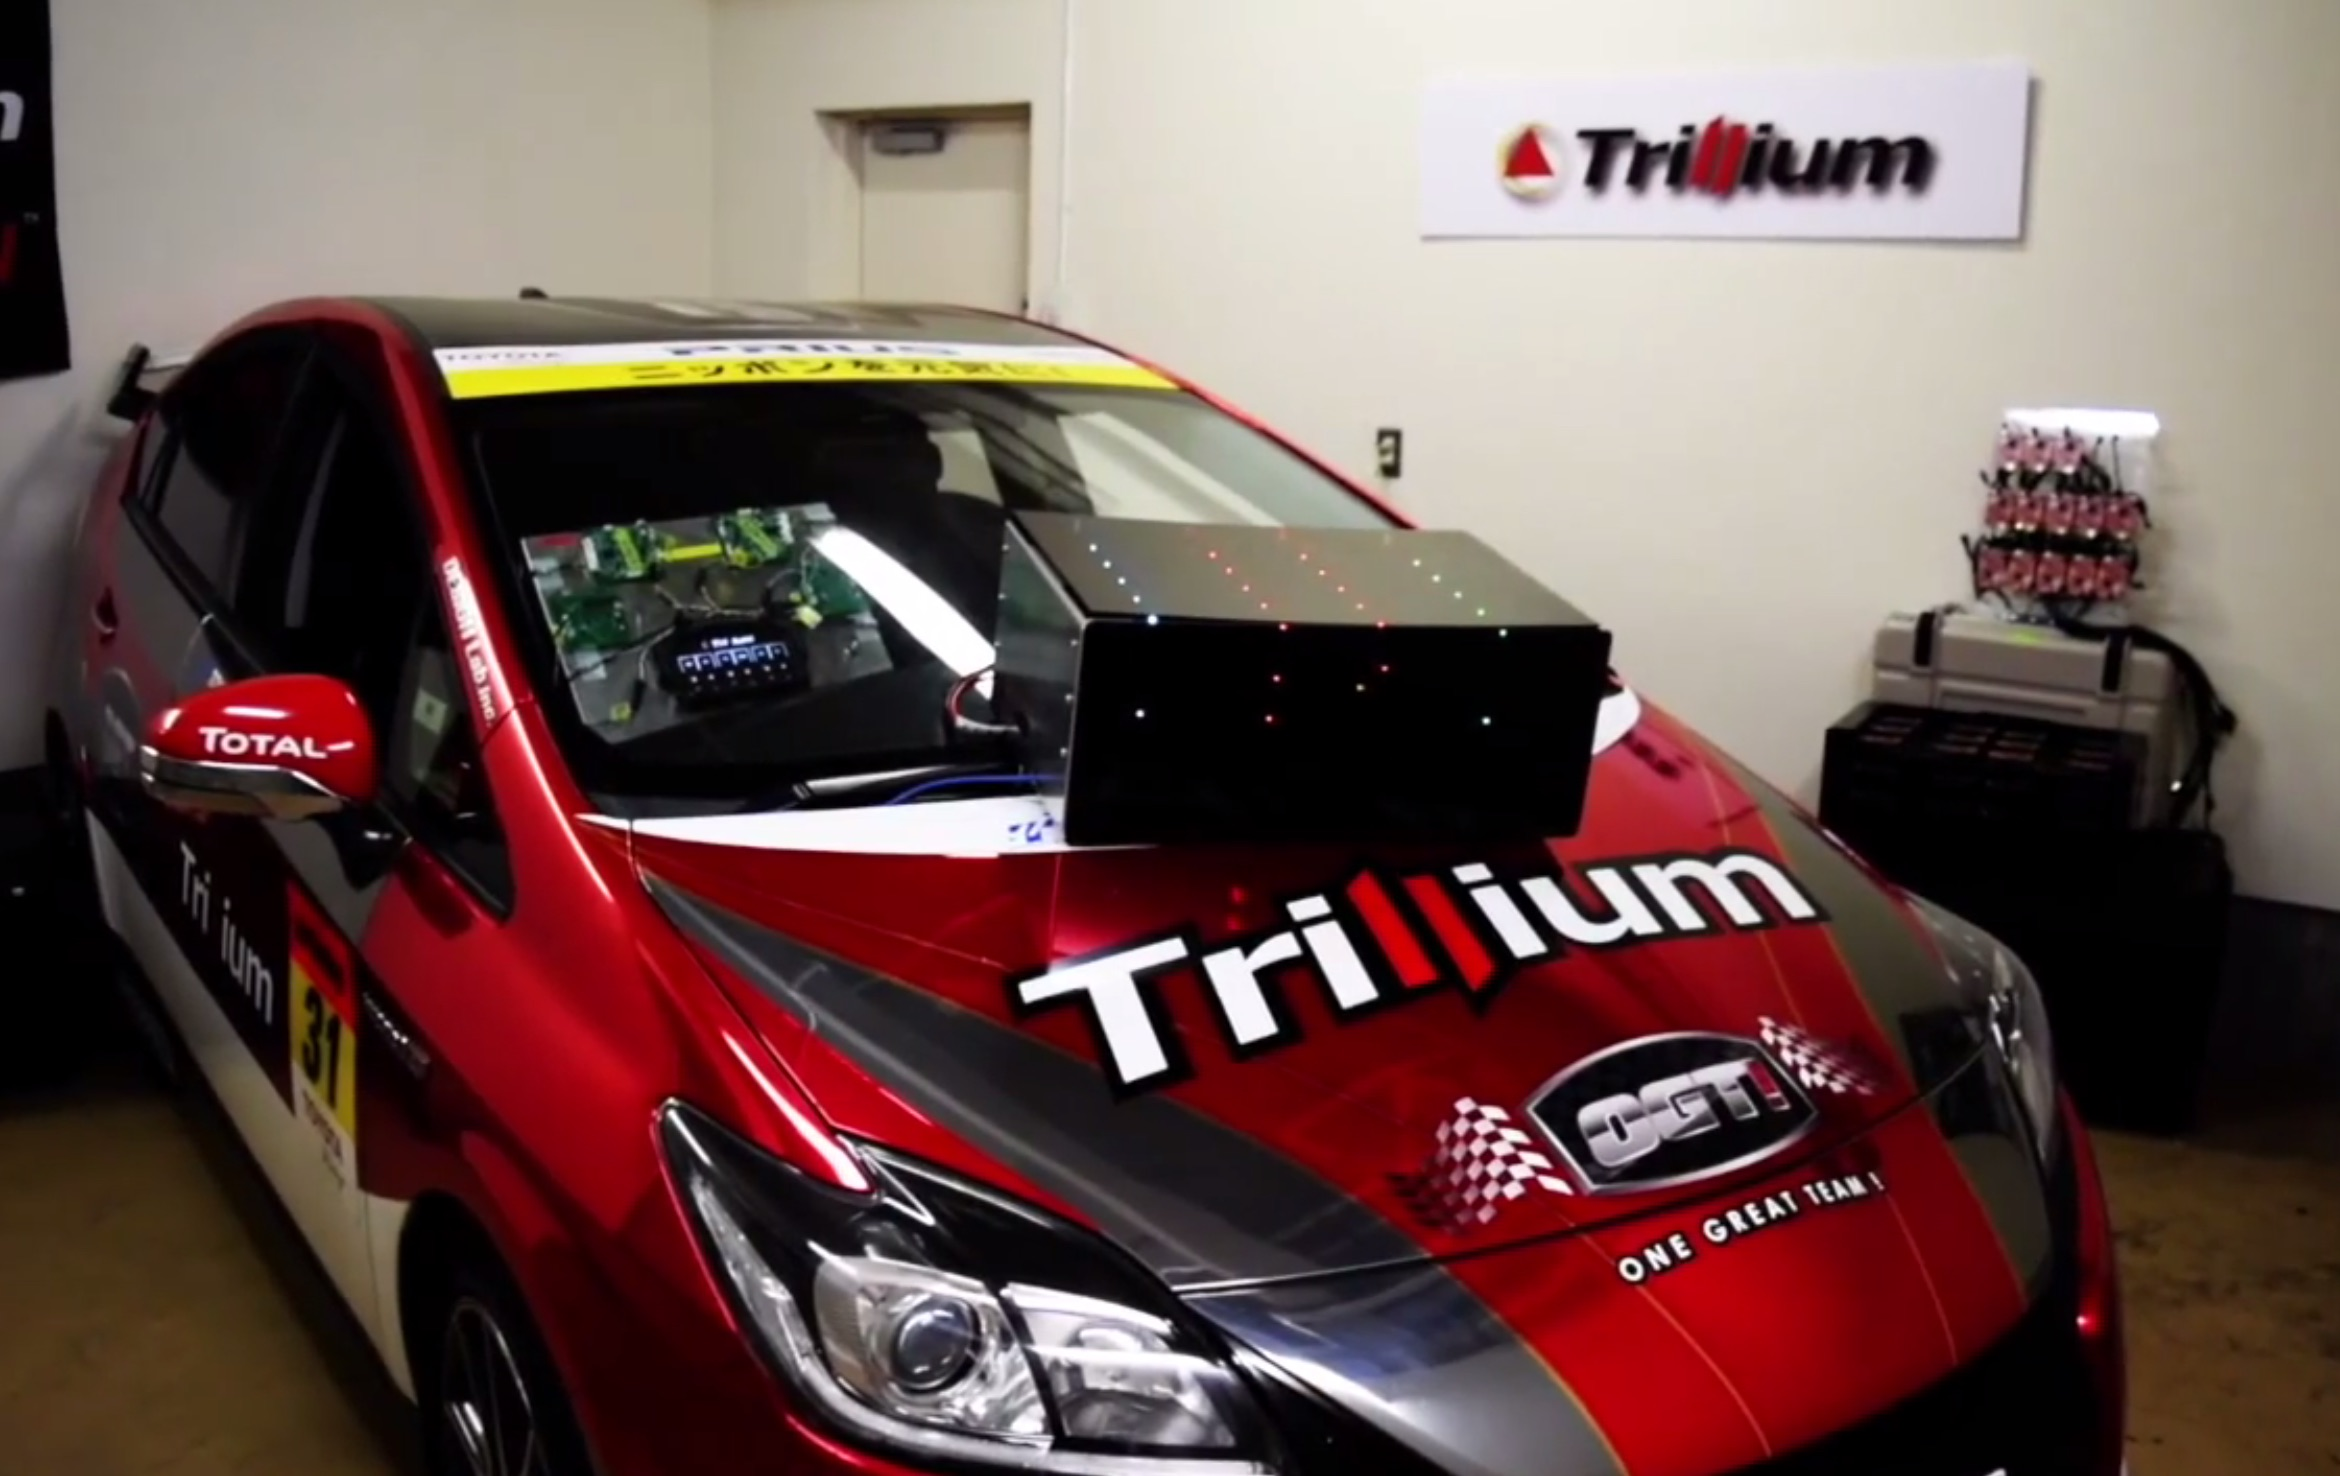 Trillium aims to shield your high tech car against cyber s